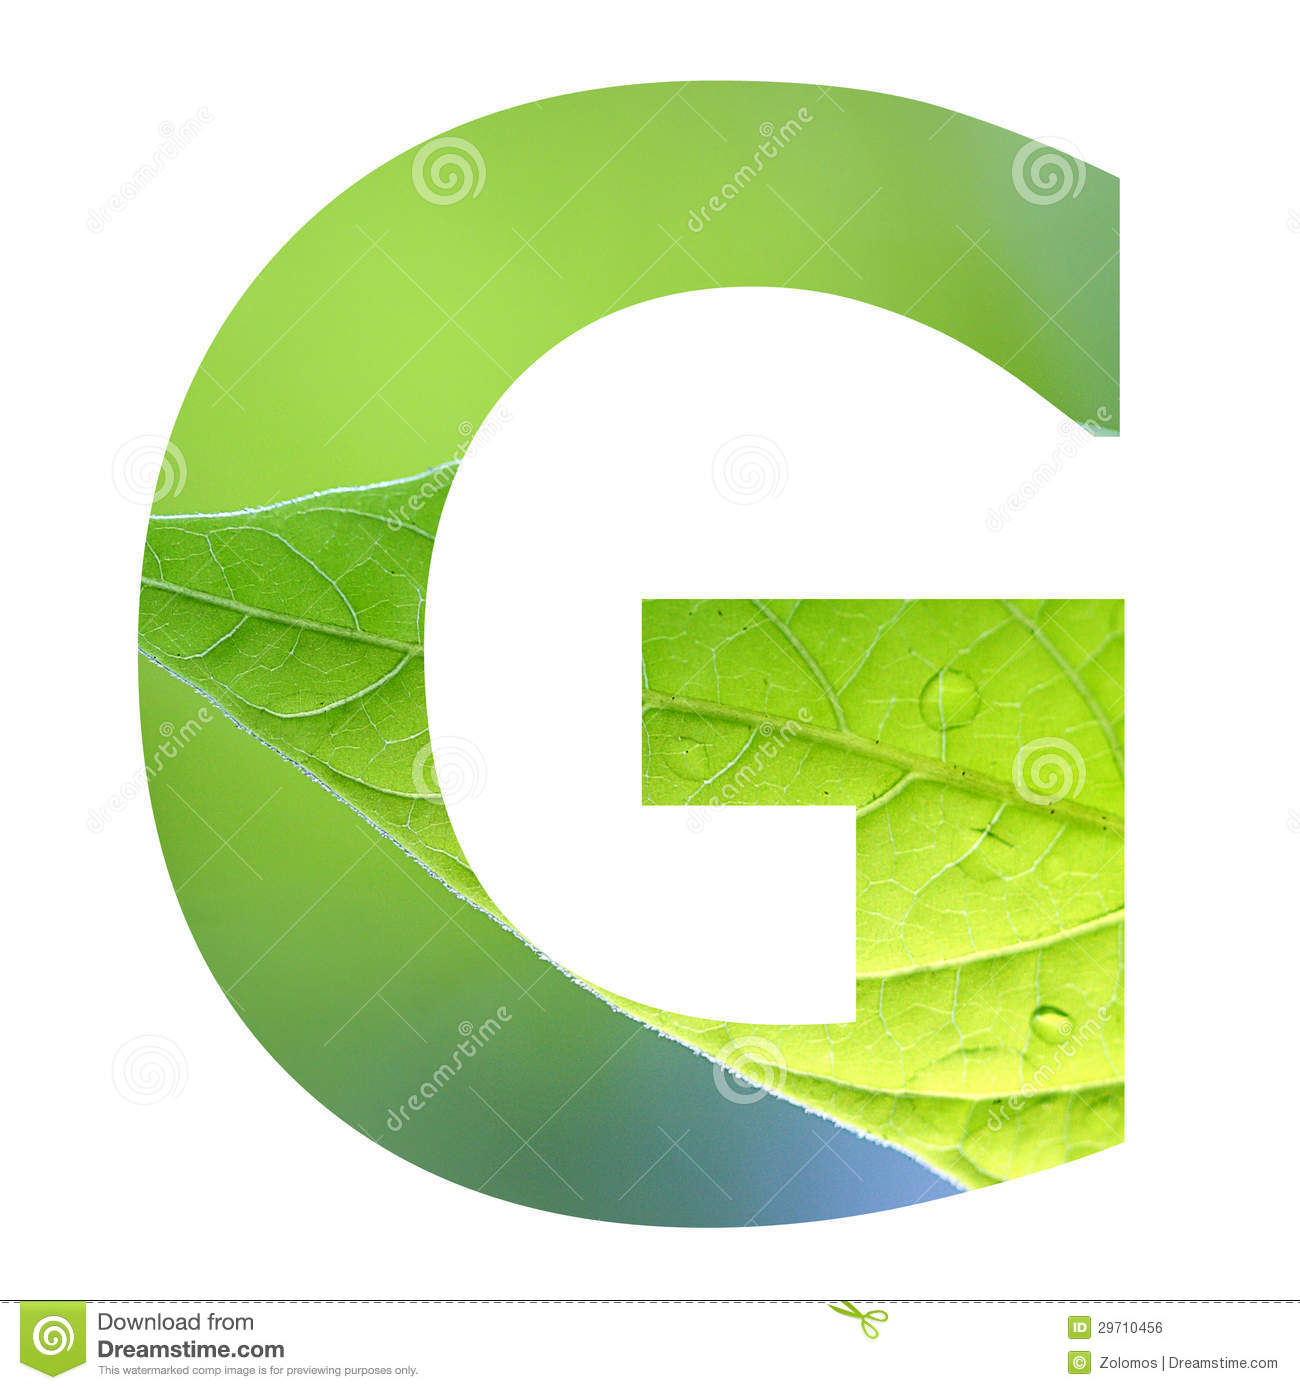 green innovations View company leaders and background information for advanced green innovations, llc search our database of over 100 million company and executive profiles.